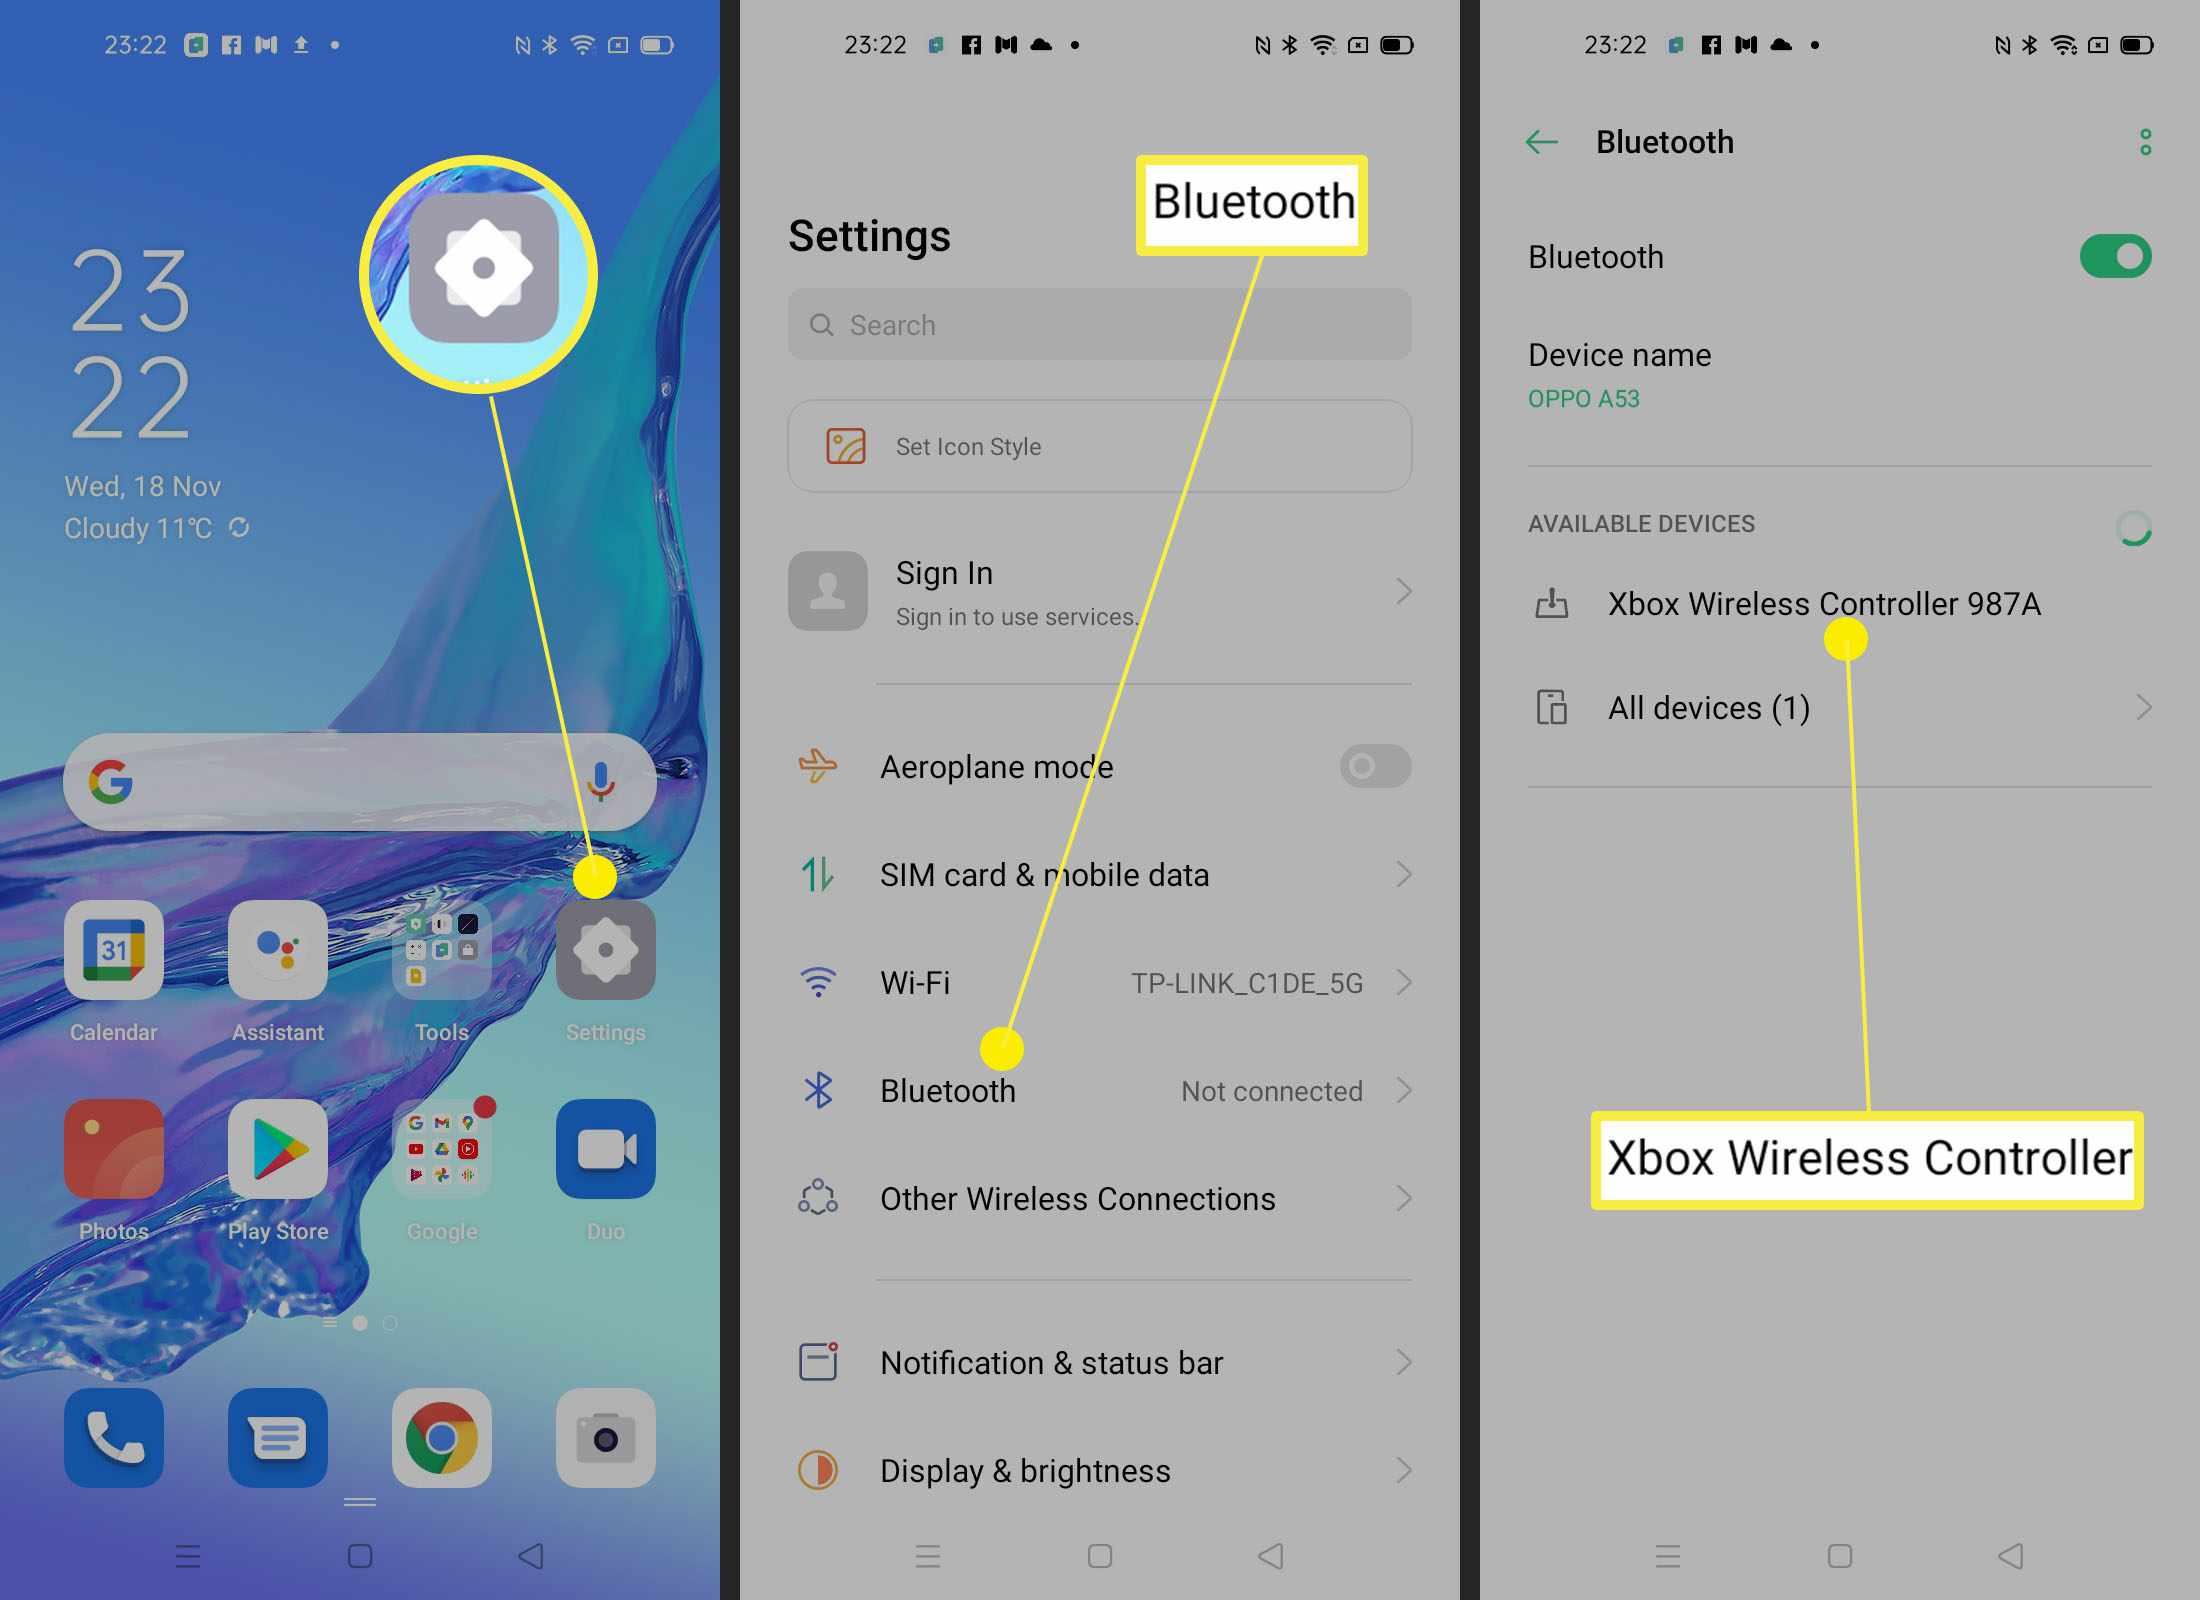 Steps involved to pair a controller with an Android phone via Bluetooth